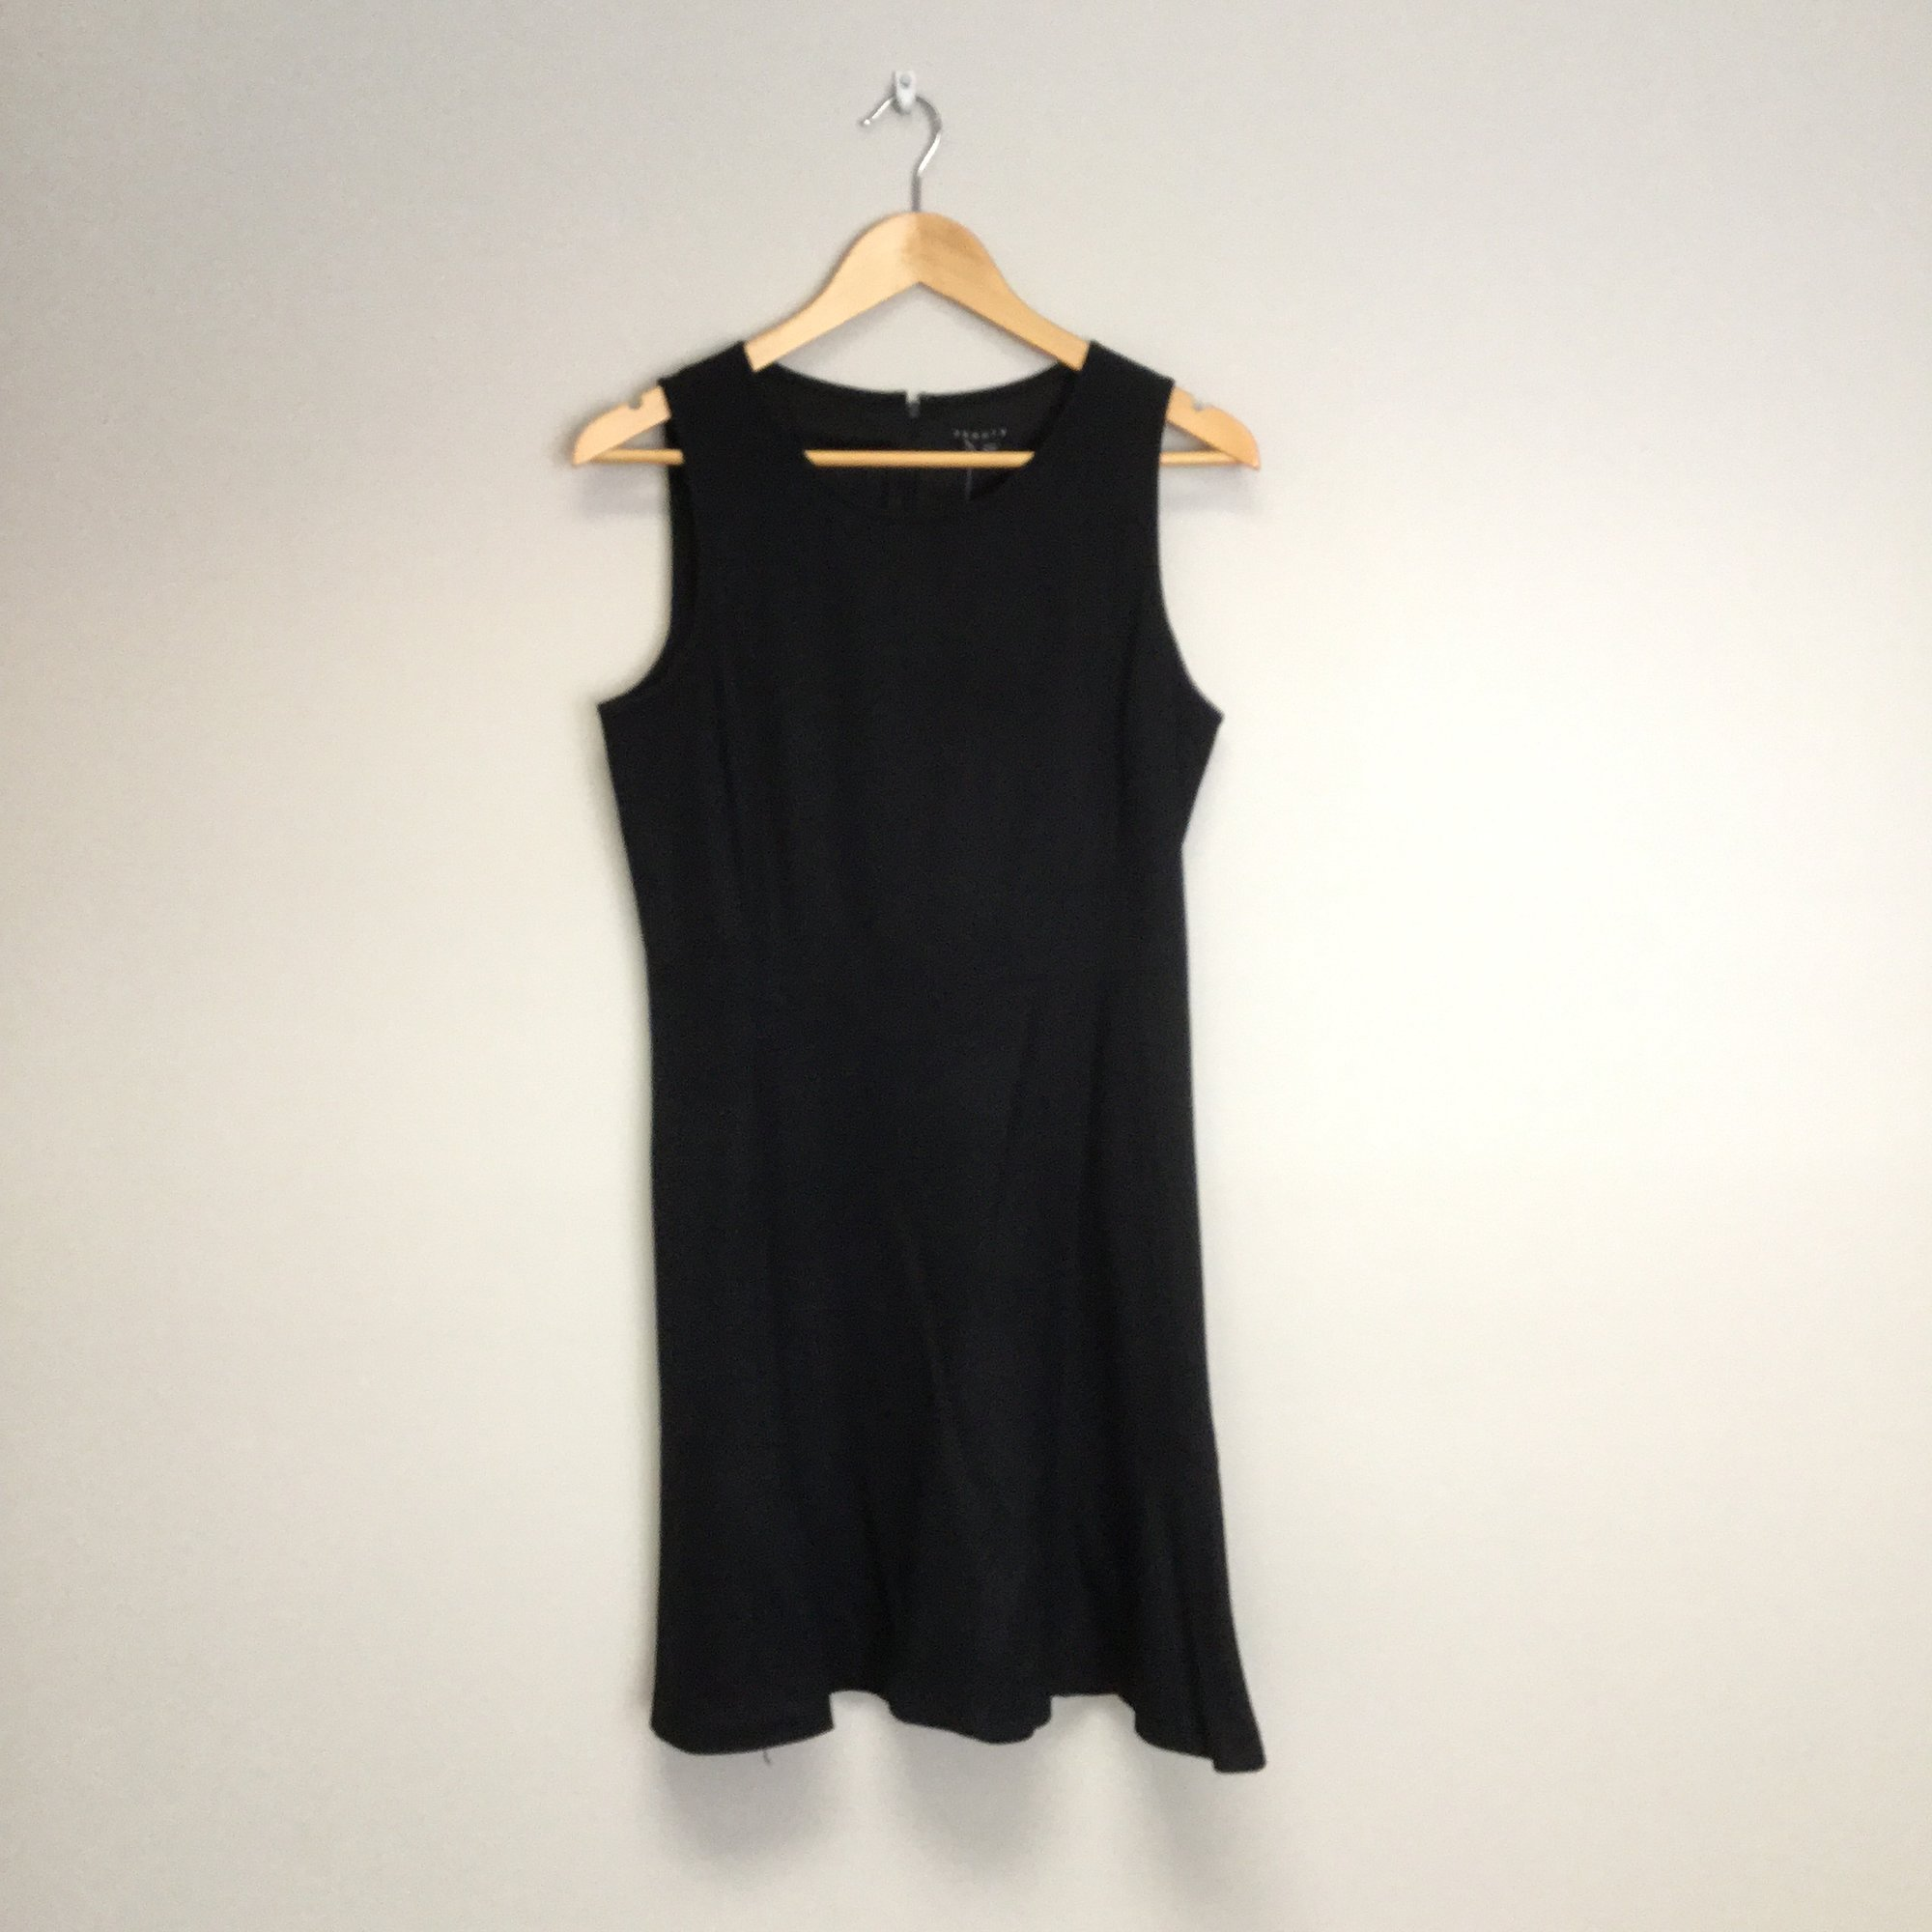 Theory A-Line Sleeveless Dress<br /> Size 8<br /> Black<br /> $79.00